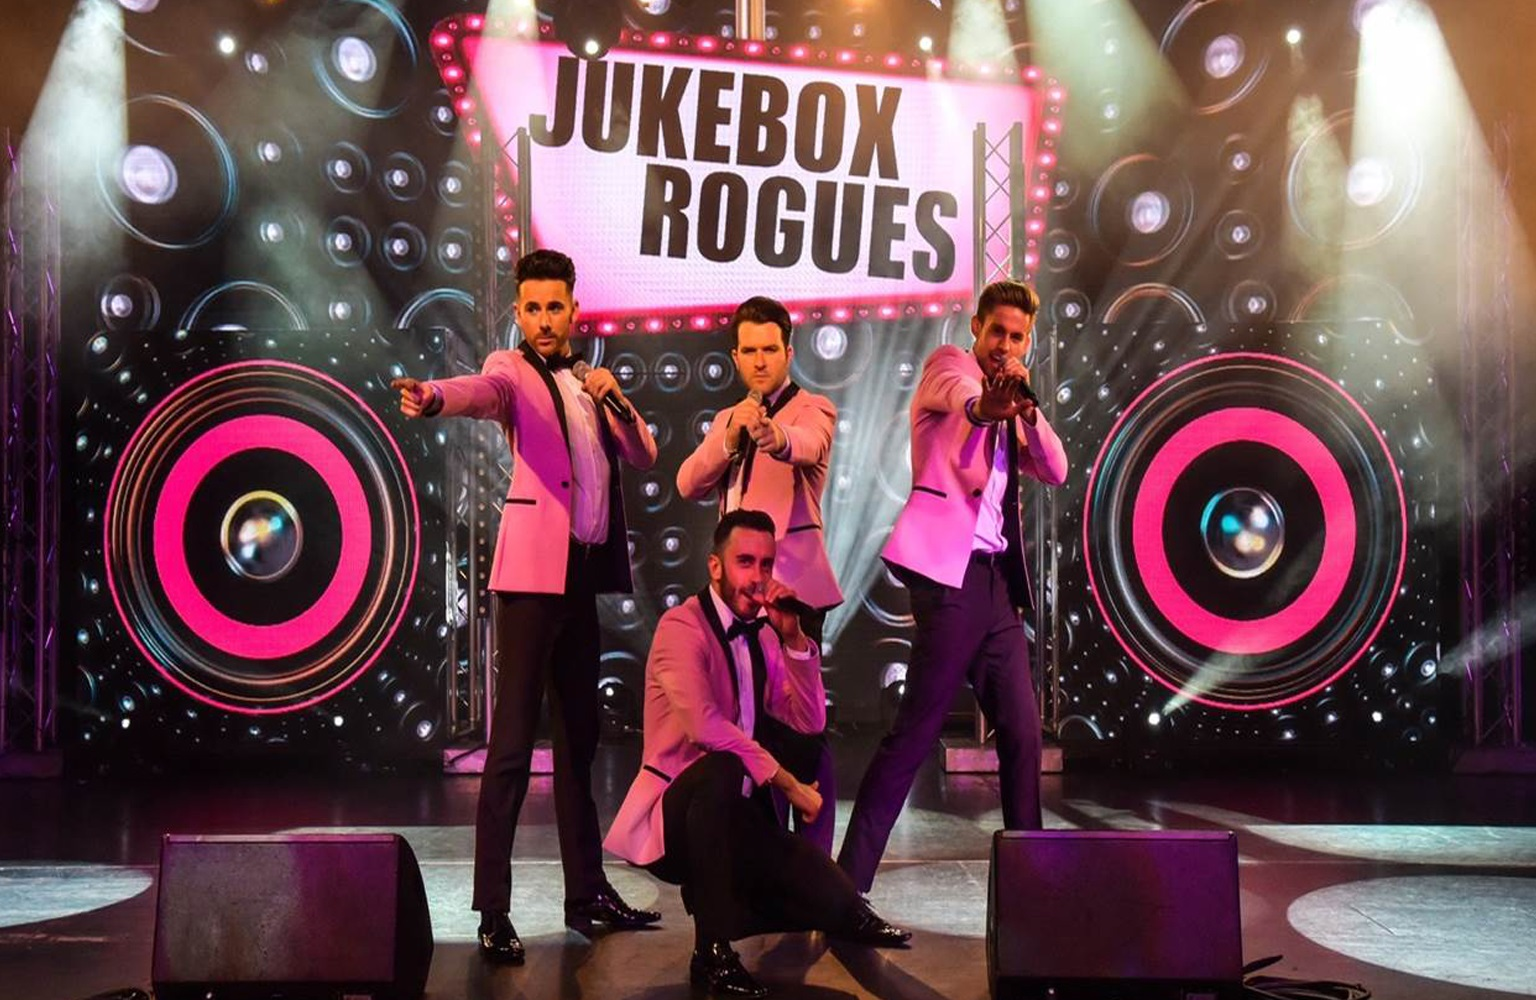 Meet the Jukebox Rogues